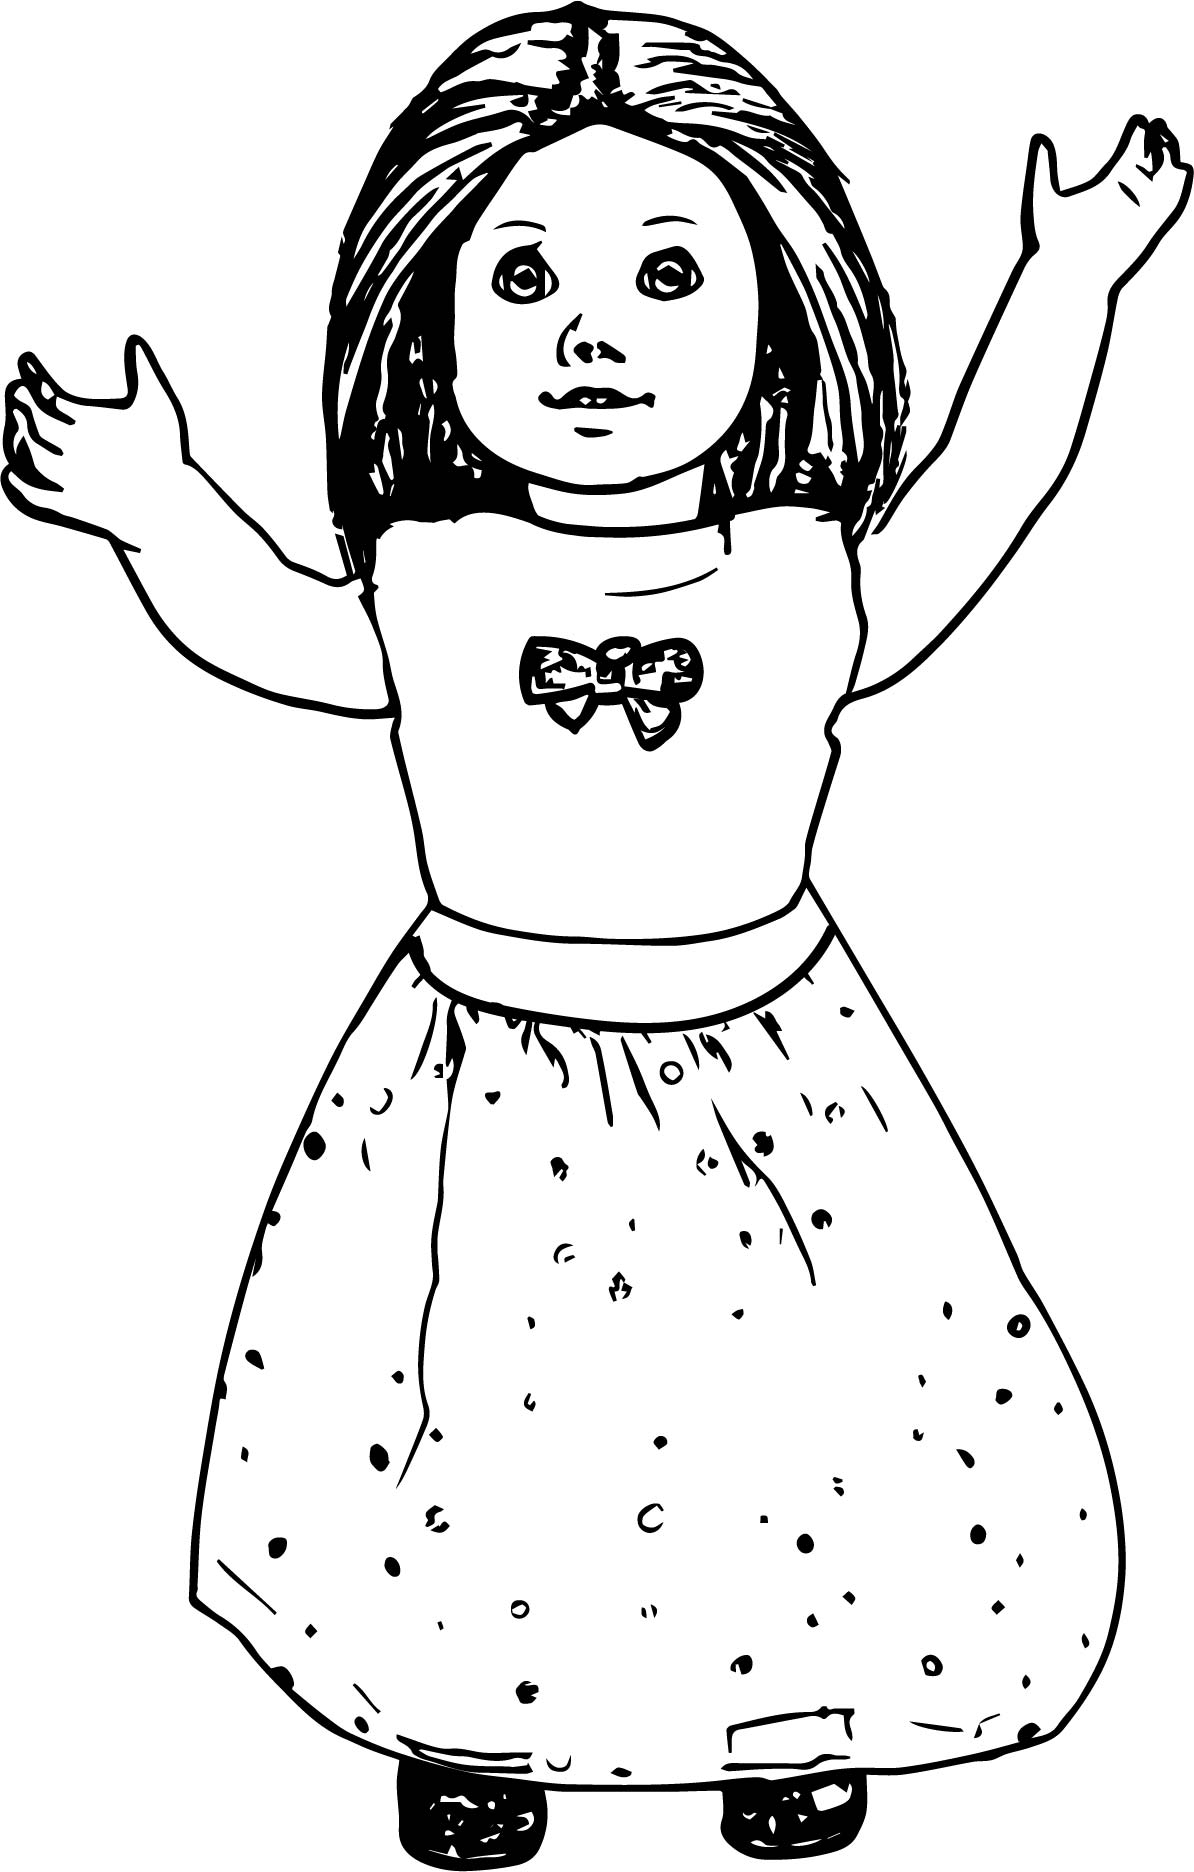 free girl coloring pages to print american girl coloring pages best coloring pages for kids print coloring to girl free pages